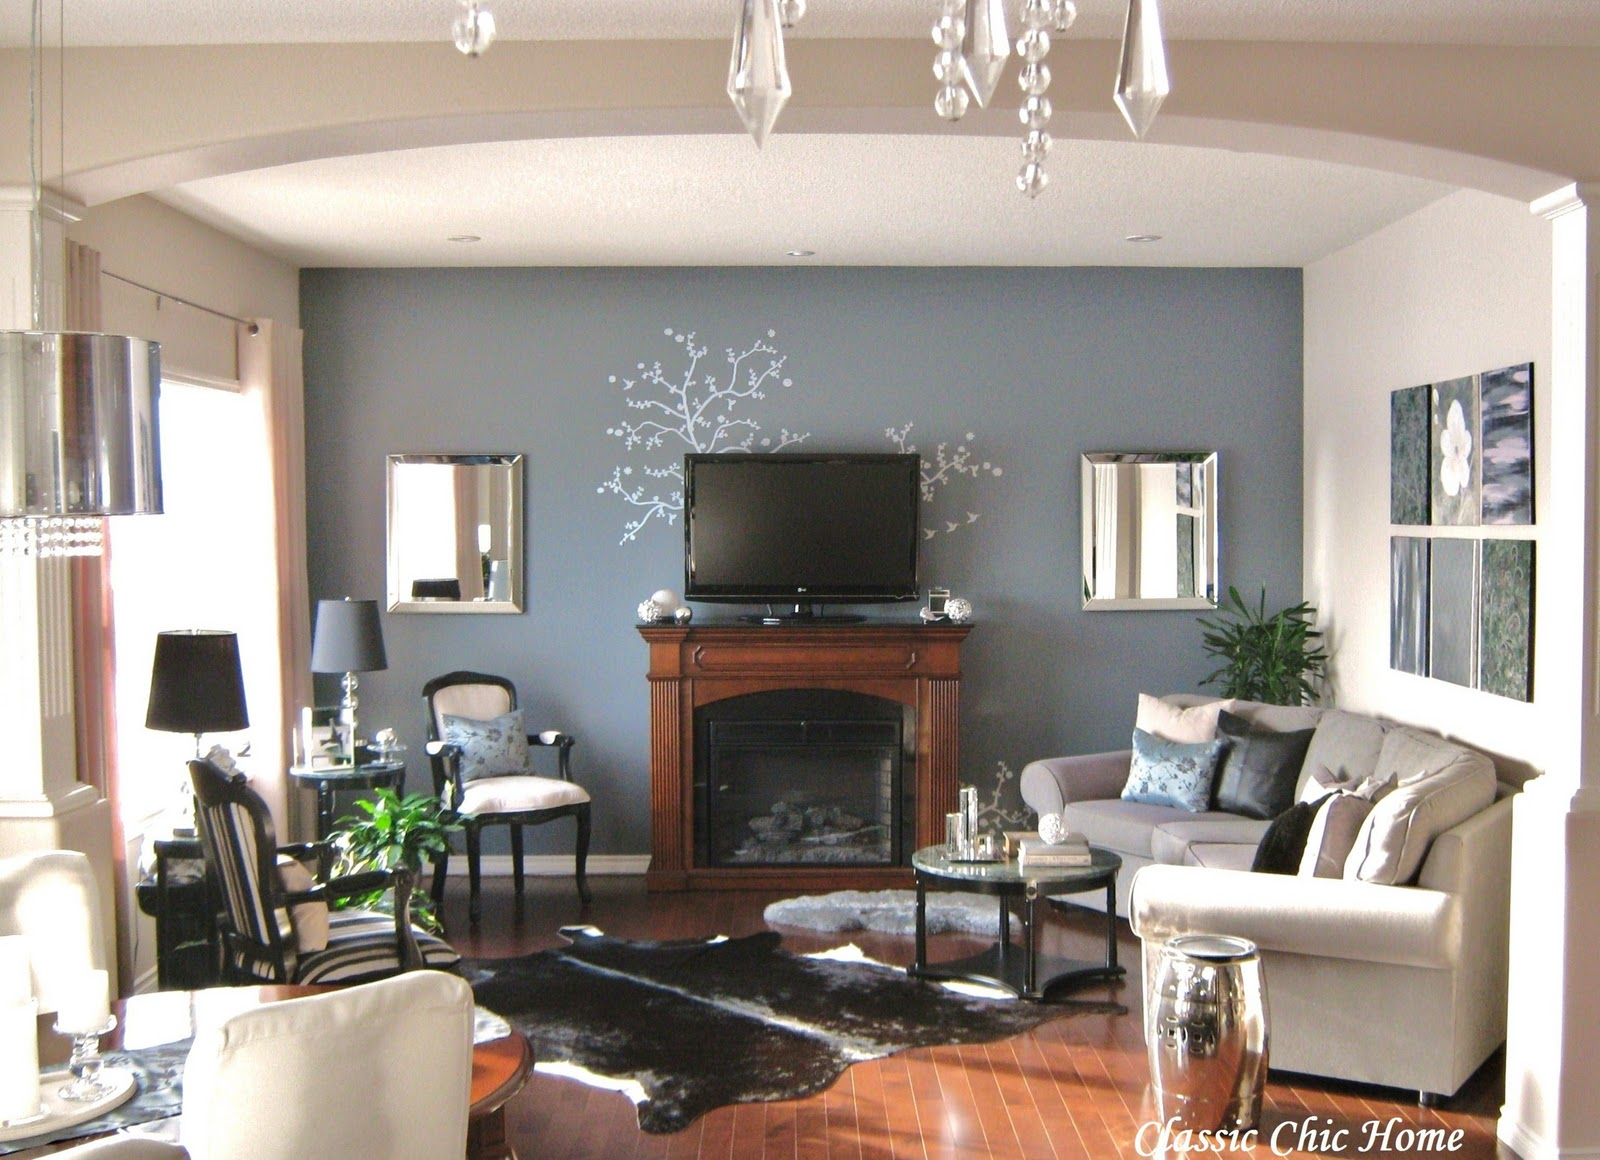 Small Living Room with Fireplace Ideas | Home Decor Ideas on Small Space Small Living Room With Fireplace  id=94159